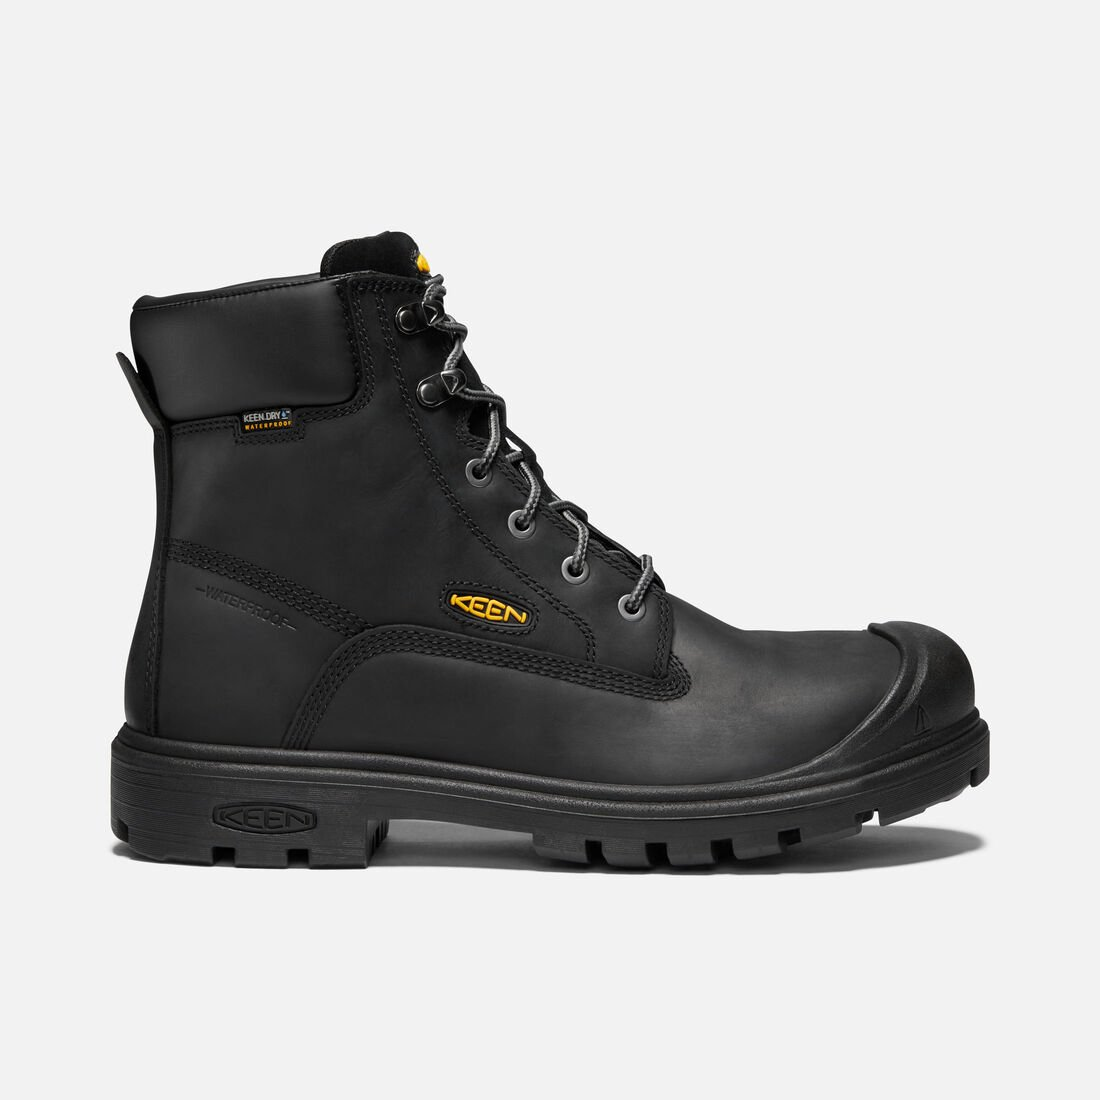 "Men's BALTIMORE 6"" Waterproof Boot (Steel Toe) in Black - large view."